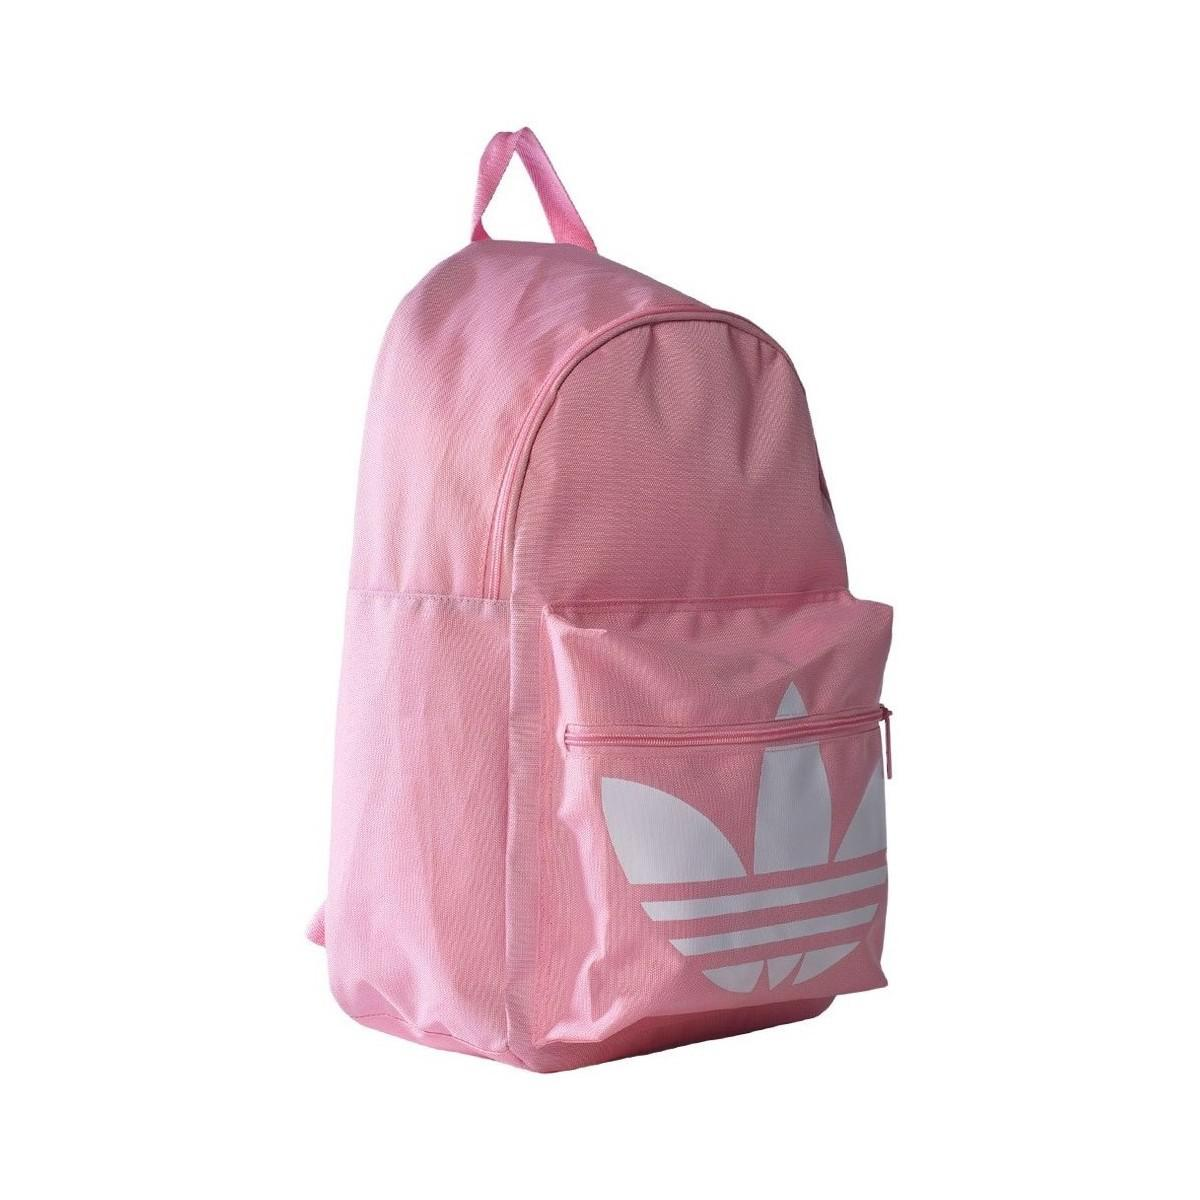 7efd90e99352 adidas Originals Classic Trefoil Women s Backpack In Pink in Pink - Lyst